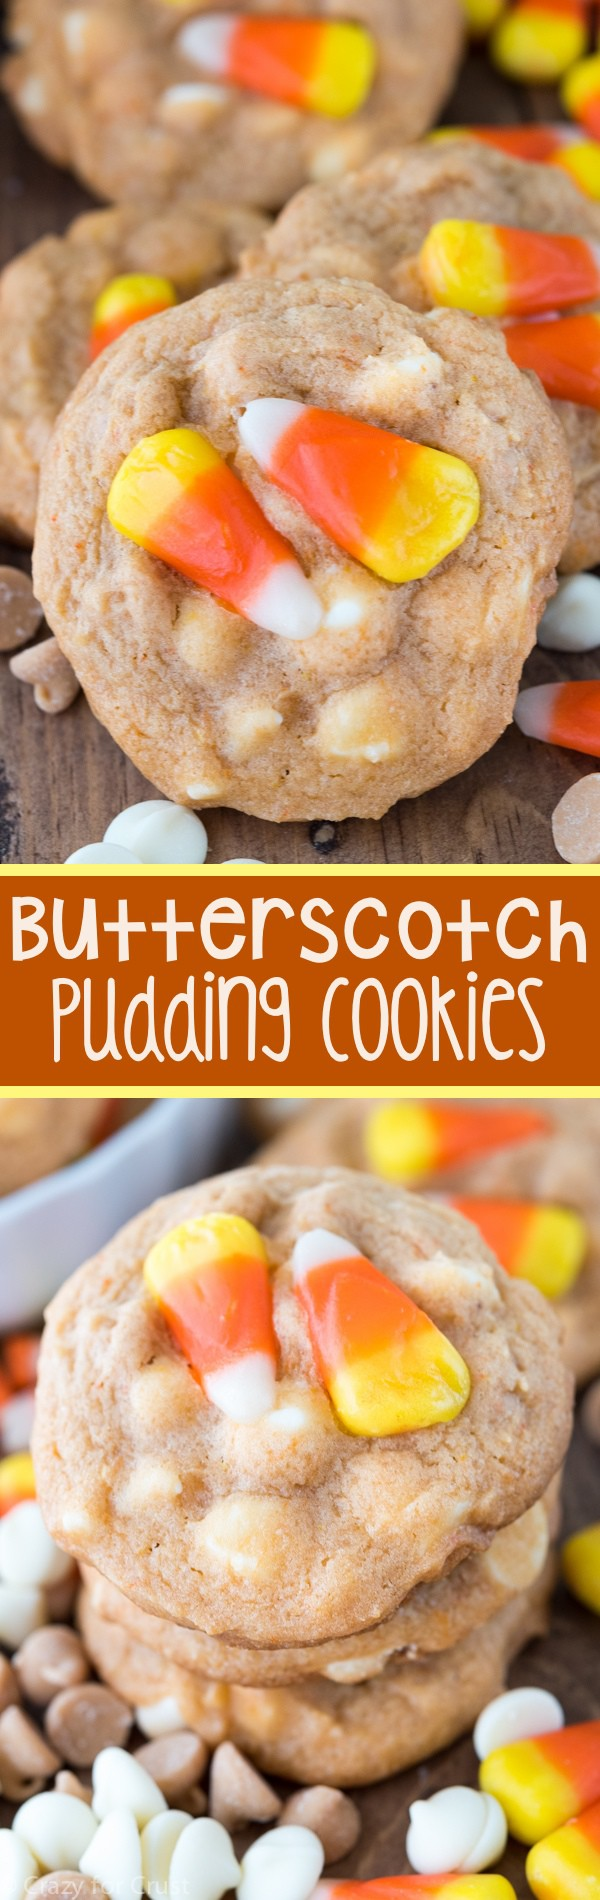 Recipe for cookies with pudding mix